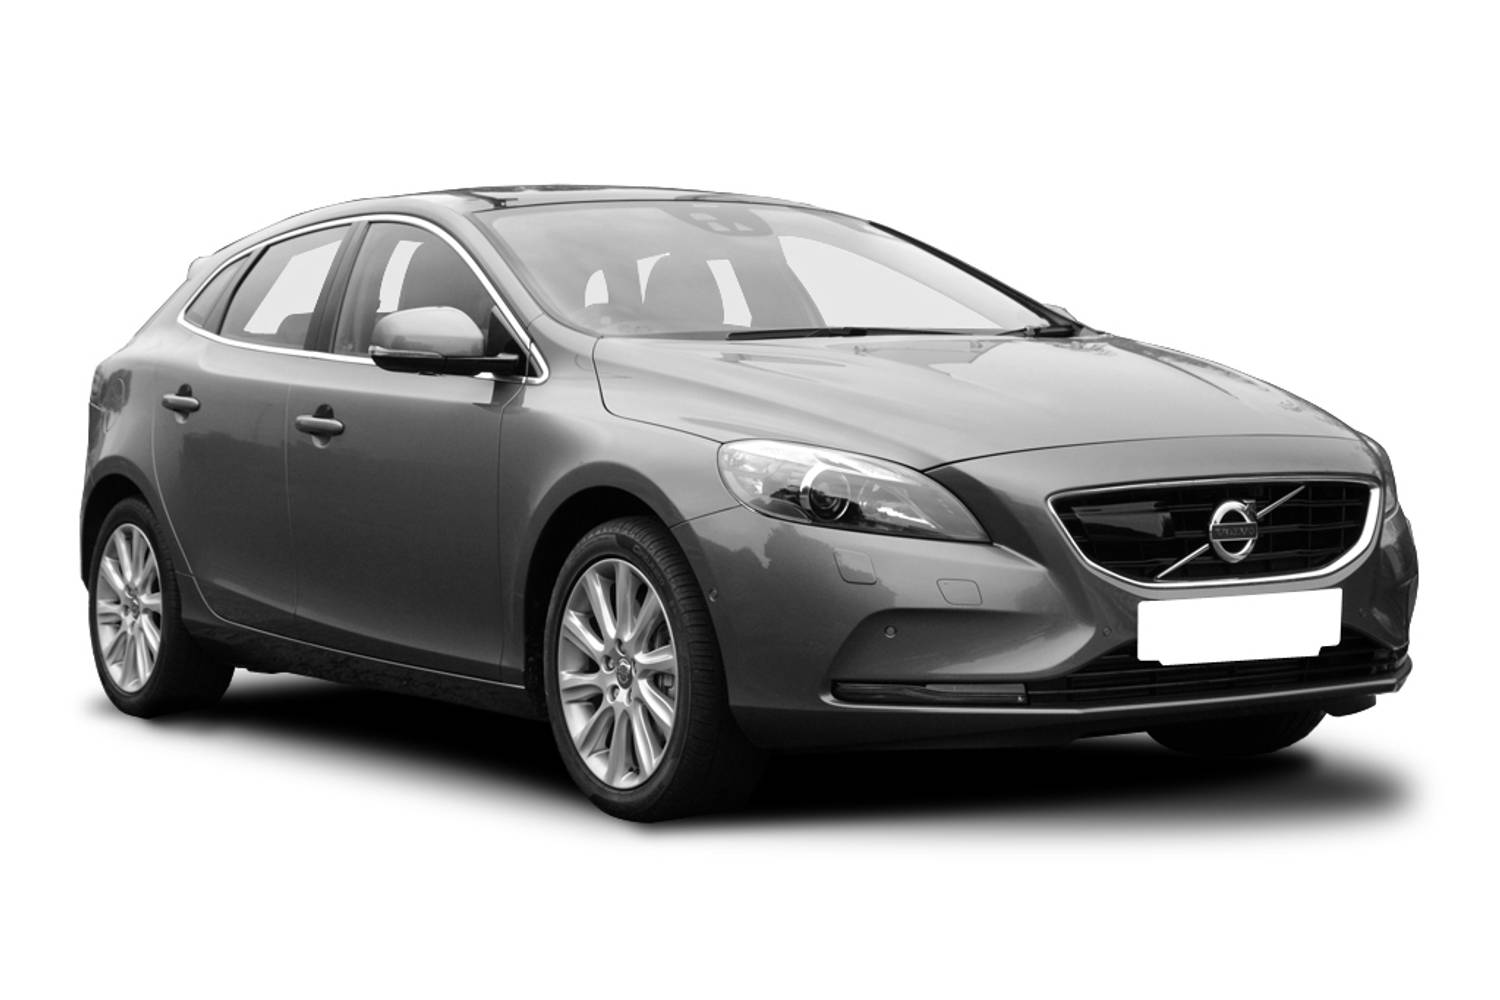 Volvo V40 Hatchback 5dr Front Three Quarter